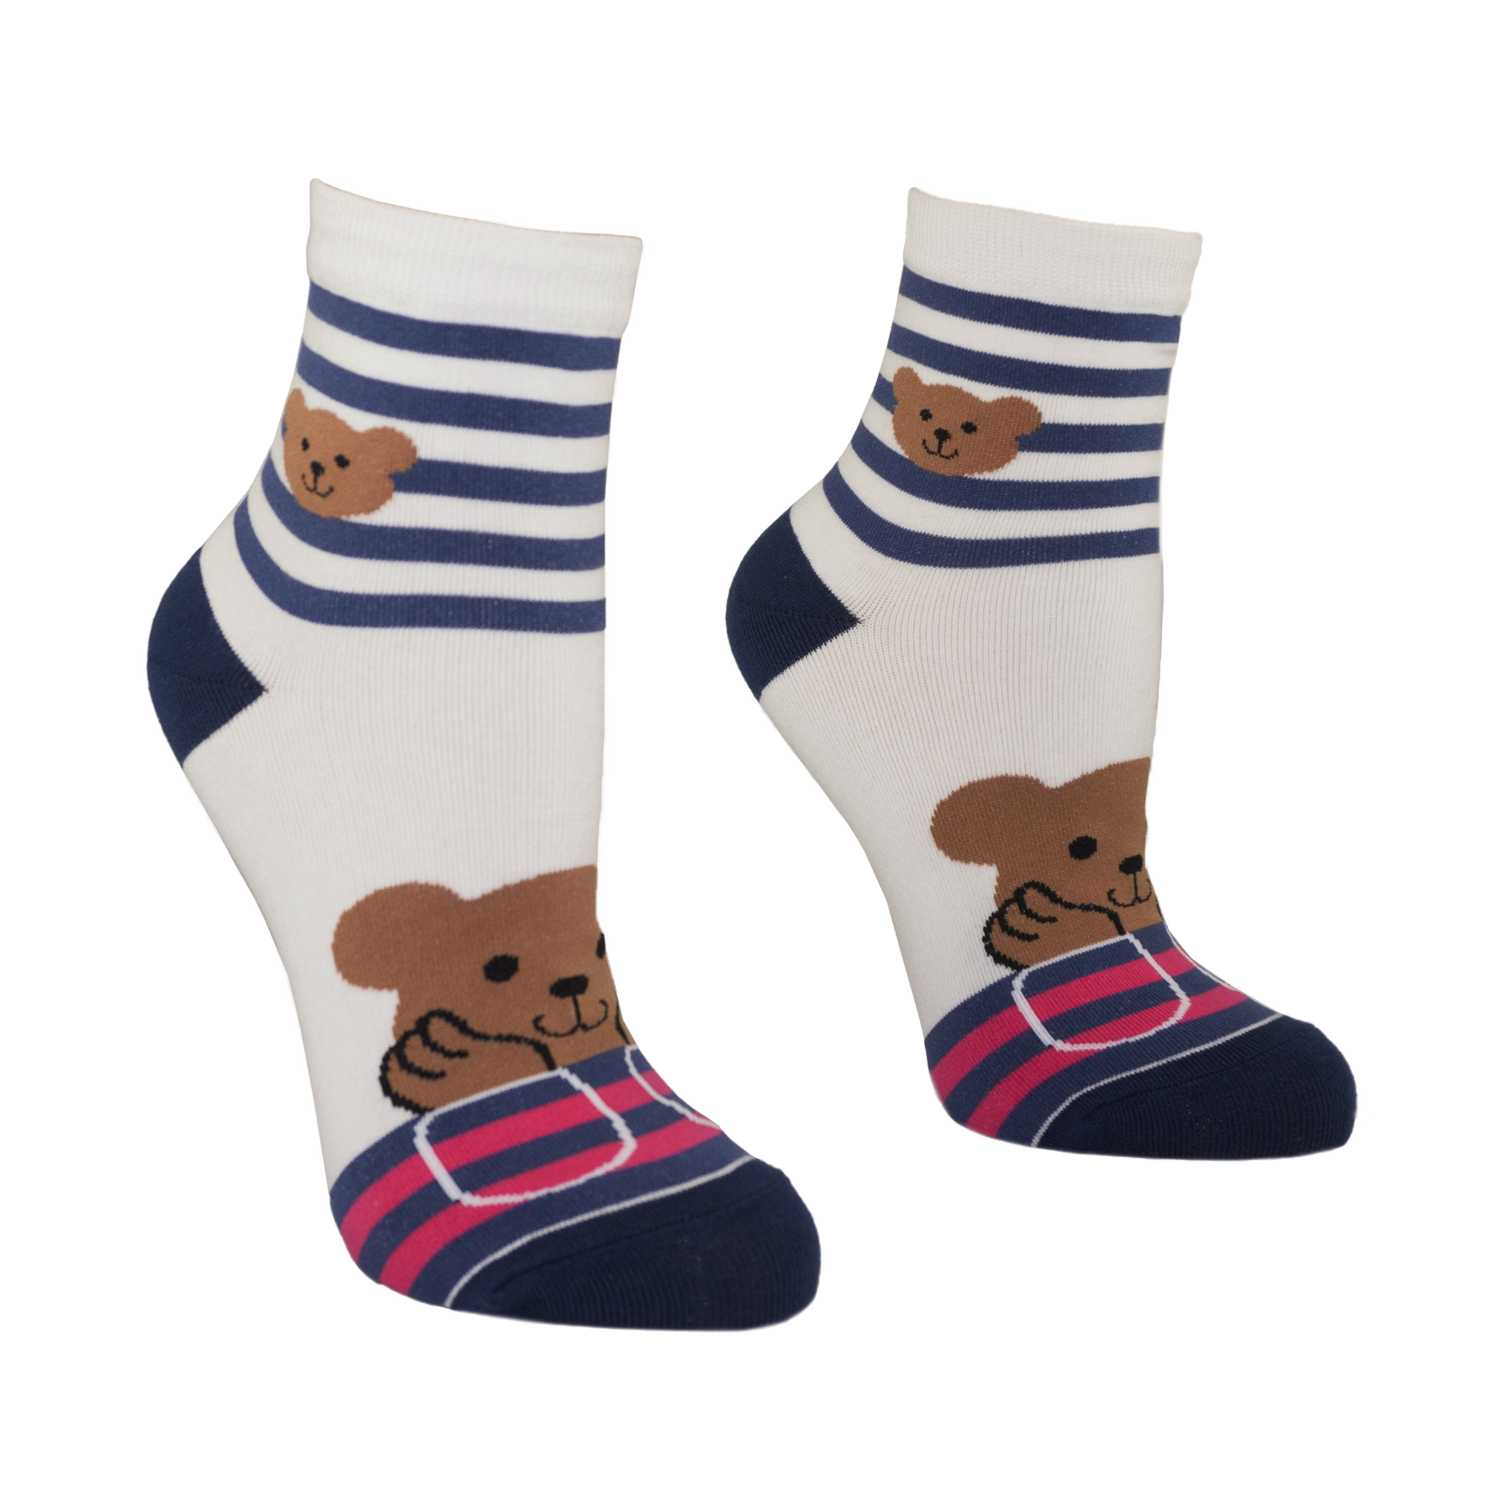 Women's Pretty Bear Design Crew Socks - White - Zestique